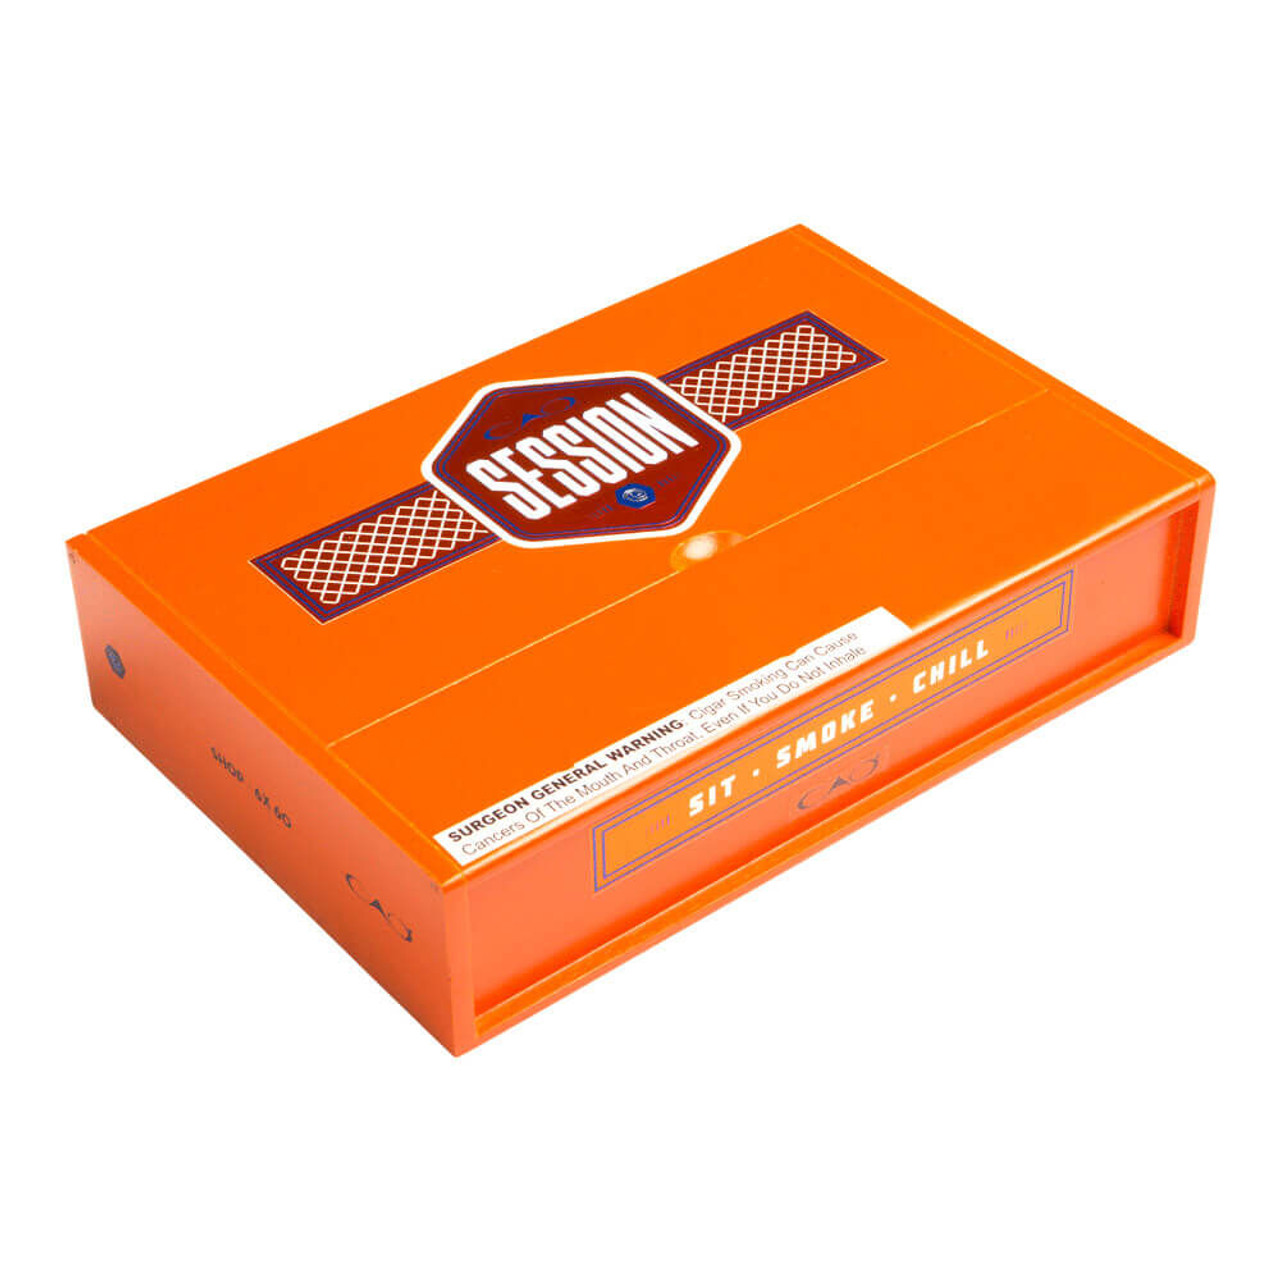 CAO Session Shop Cigars - 6.0 x 60 (Box of 20)